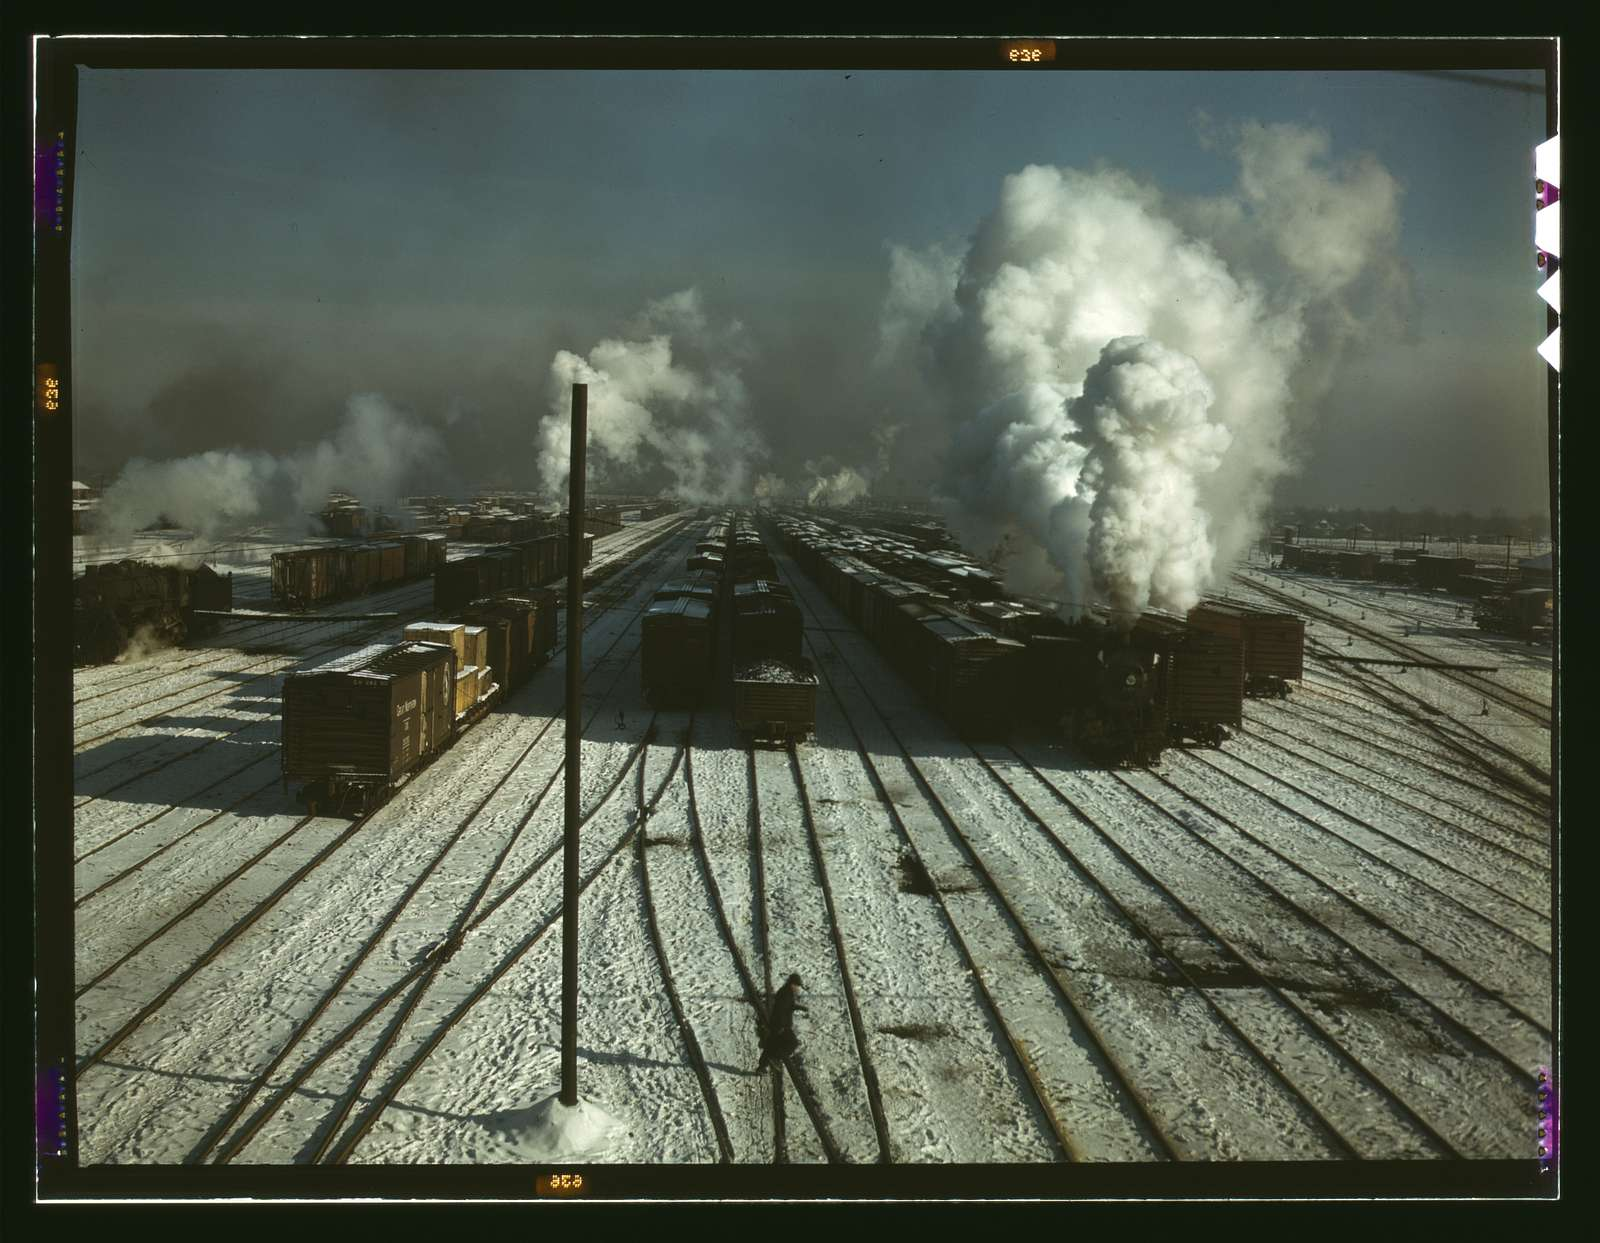 C & NW RR i.e. Chicago and North Western railroad, a general view of a classification yard at Proviso Yard, Chicago, Ill